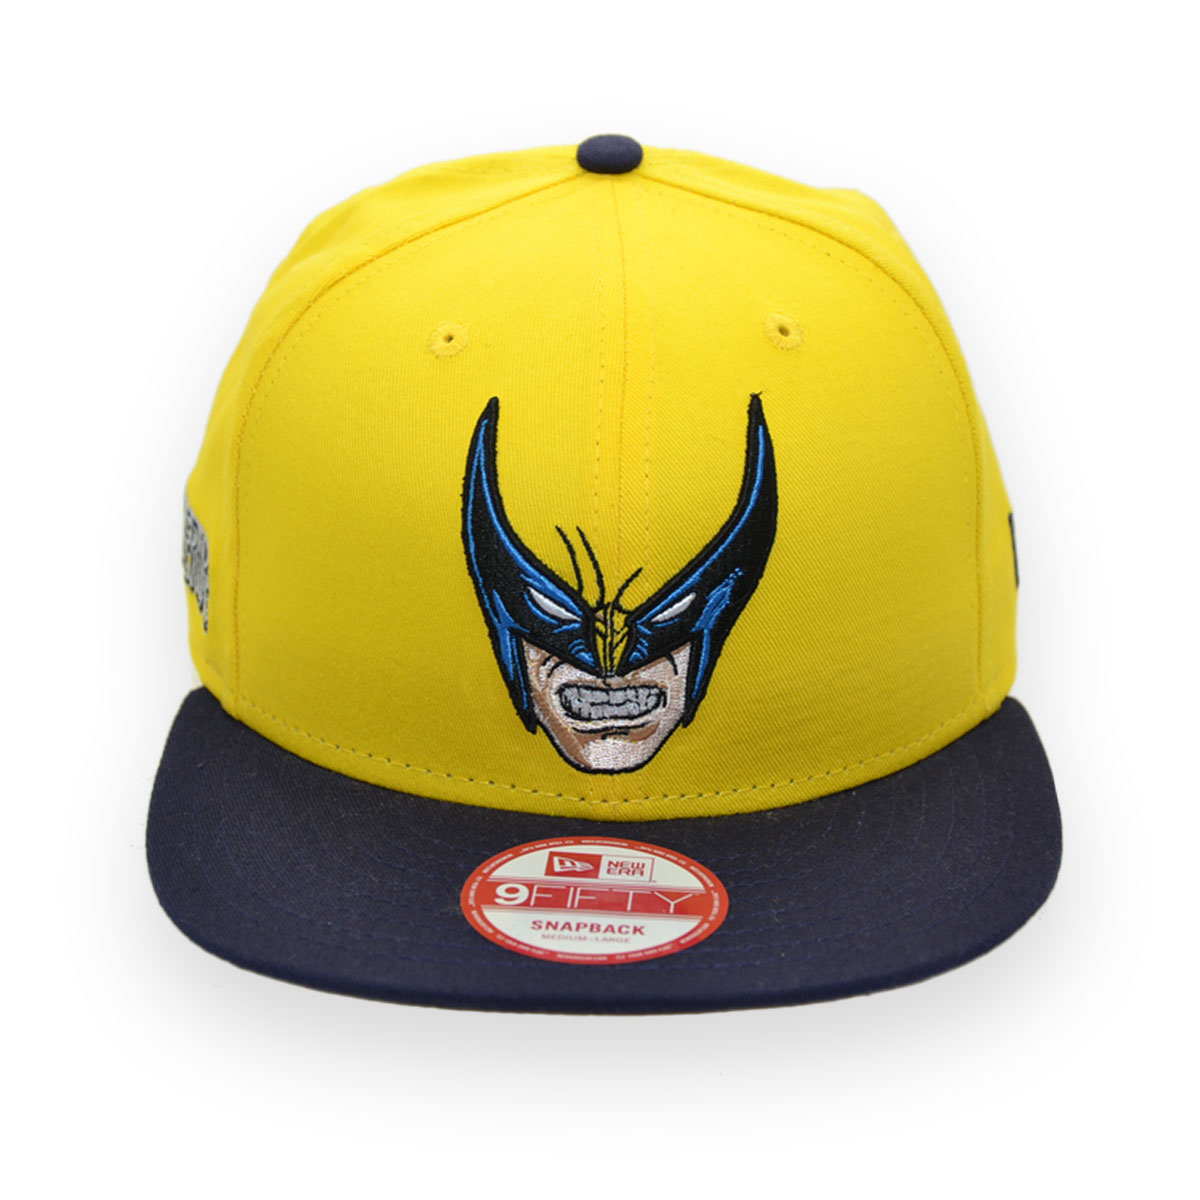 55e2dceed0c NEW ERA MARVEL WOLVERINE X-MEN 9FIFTY SNAPBACK SAMPLE CAP - MyCraze